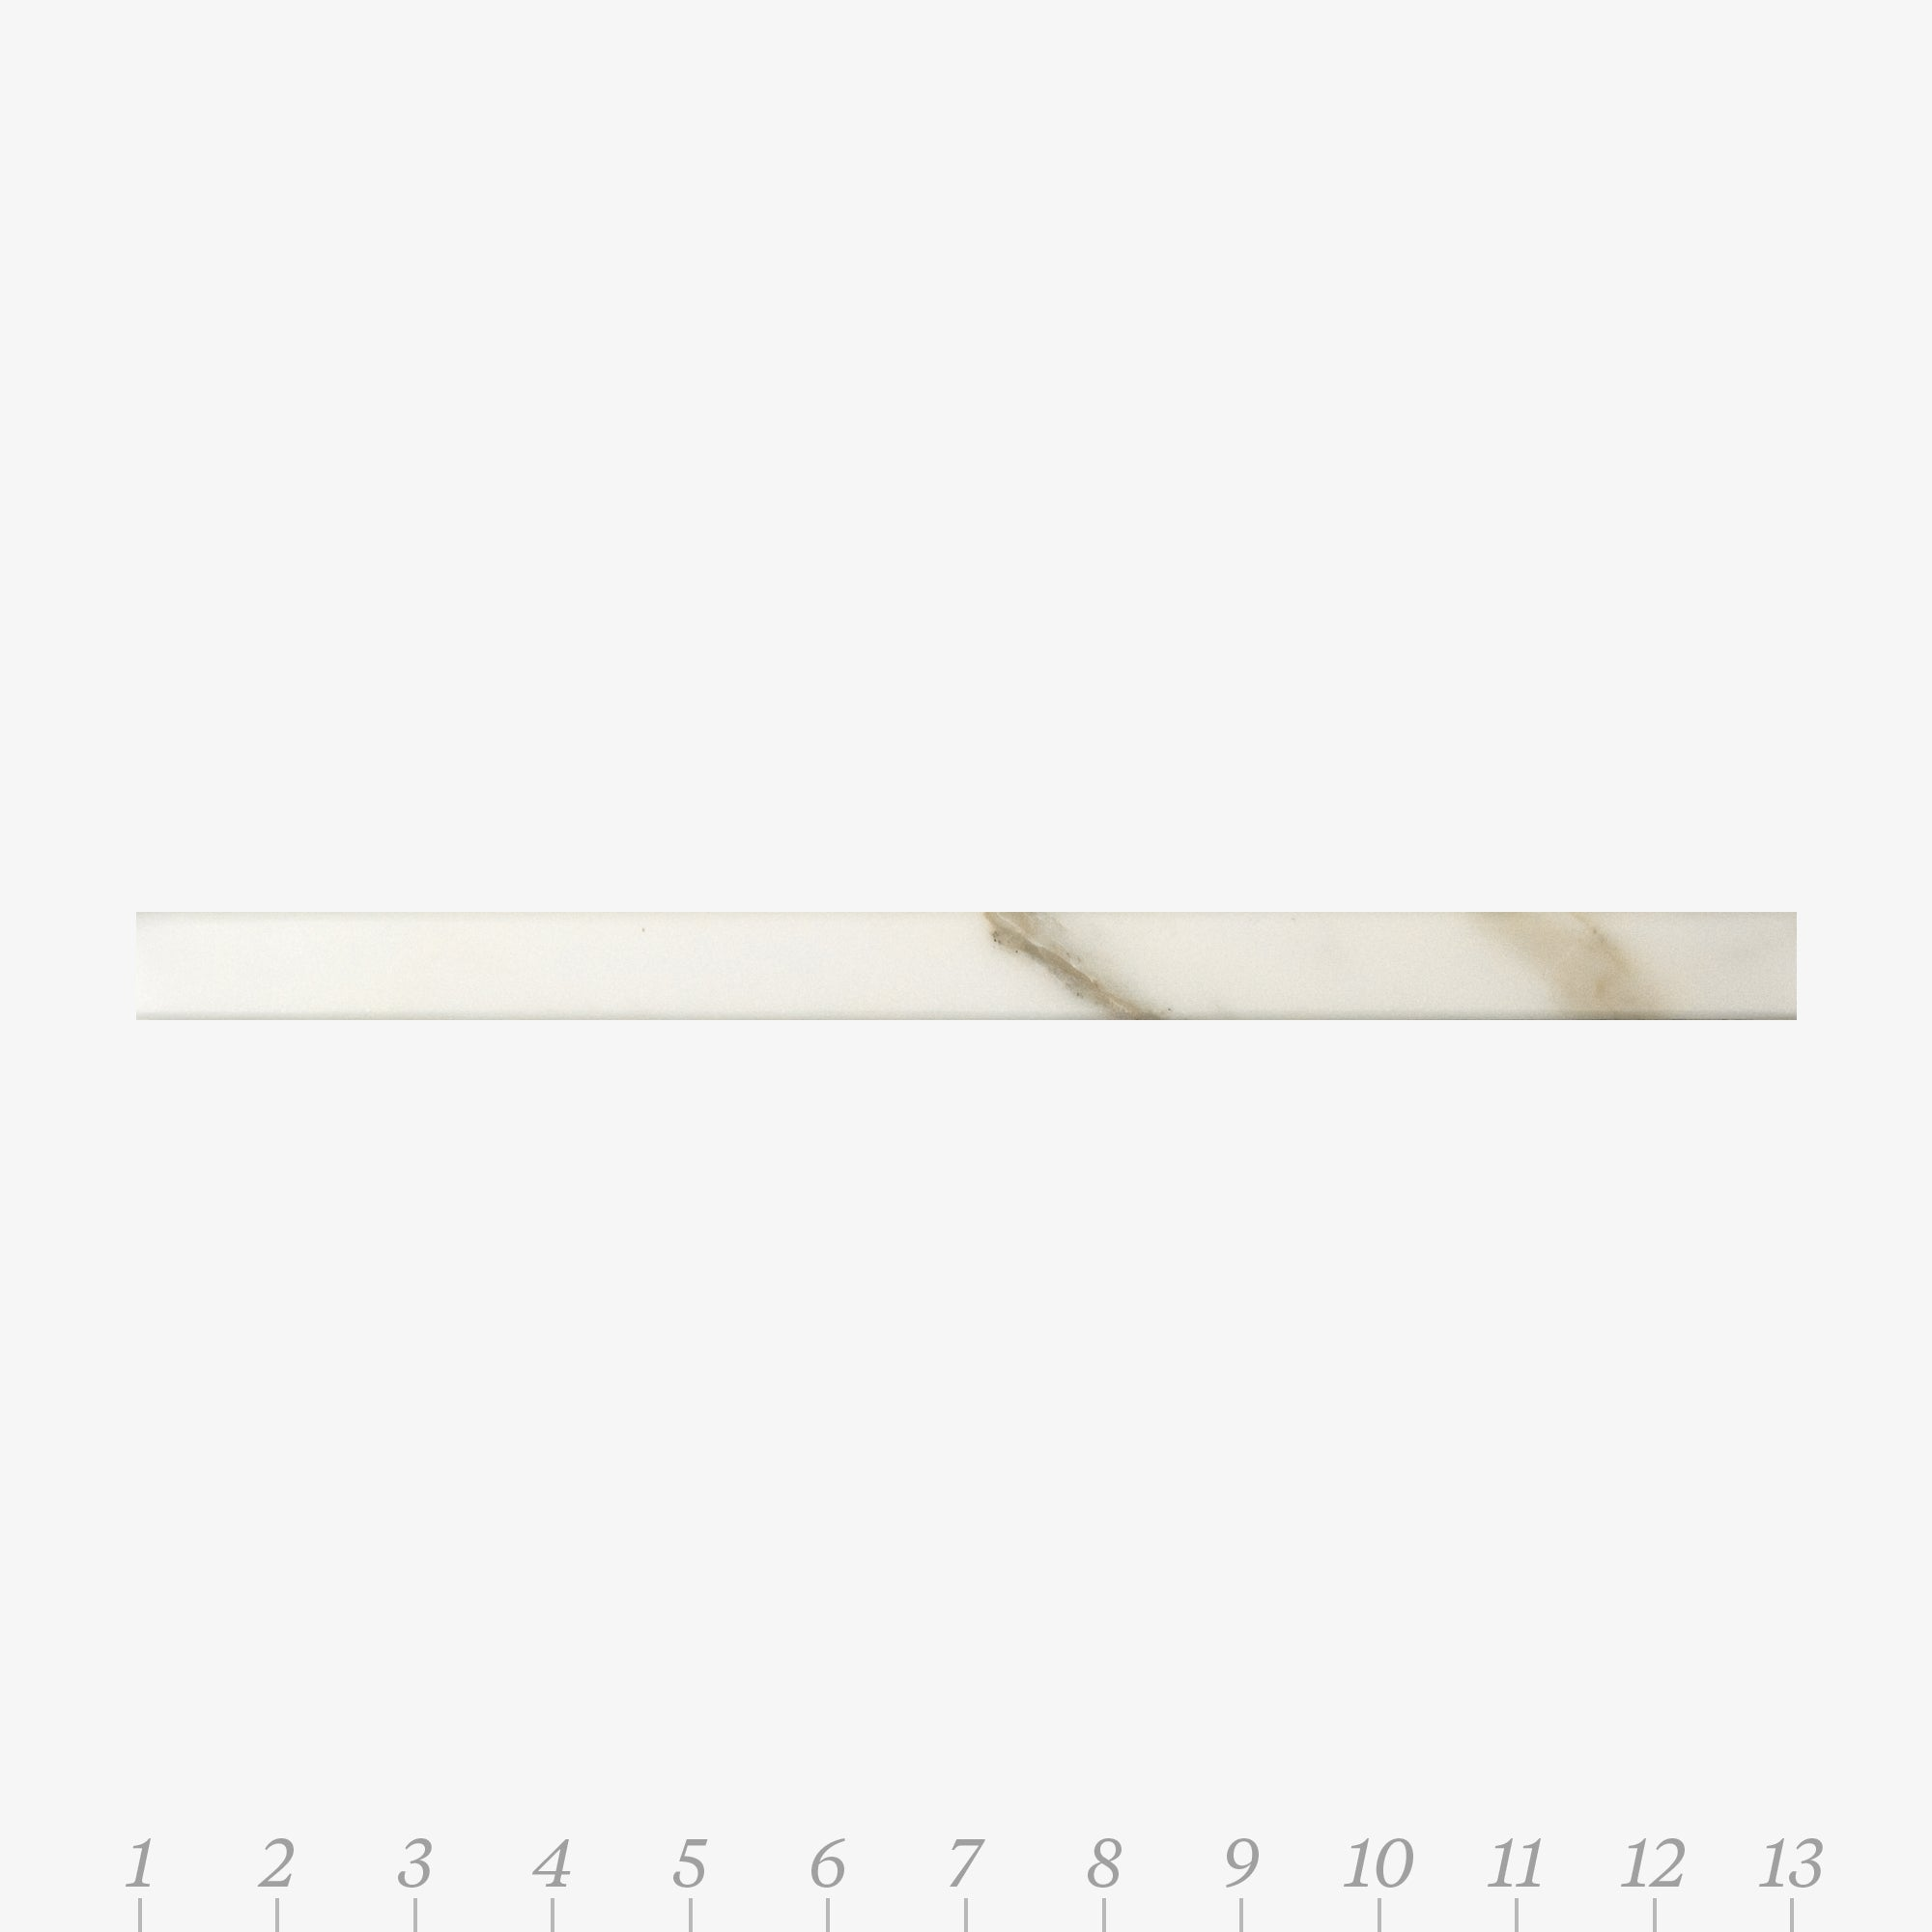 Chelsea 1 Calacatta Gold Marble Swatch Card  Honed Samples Liner product photo